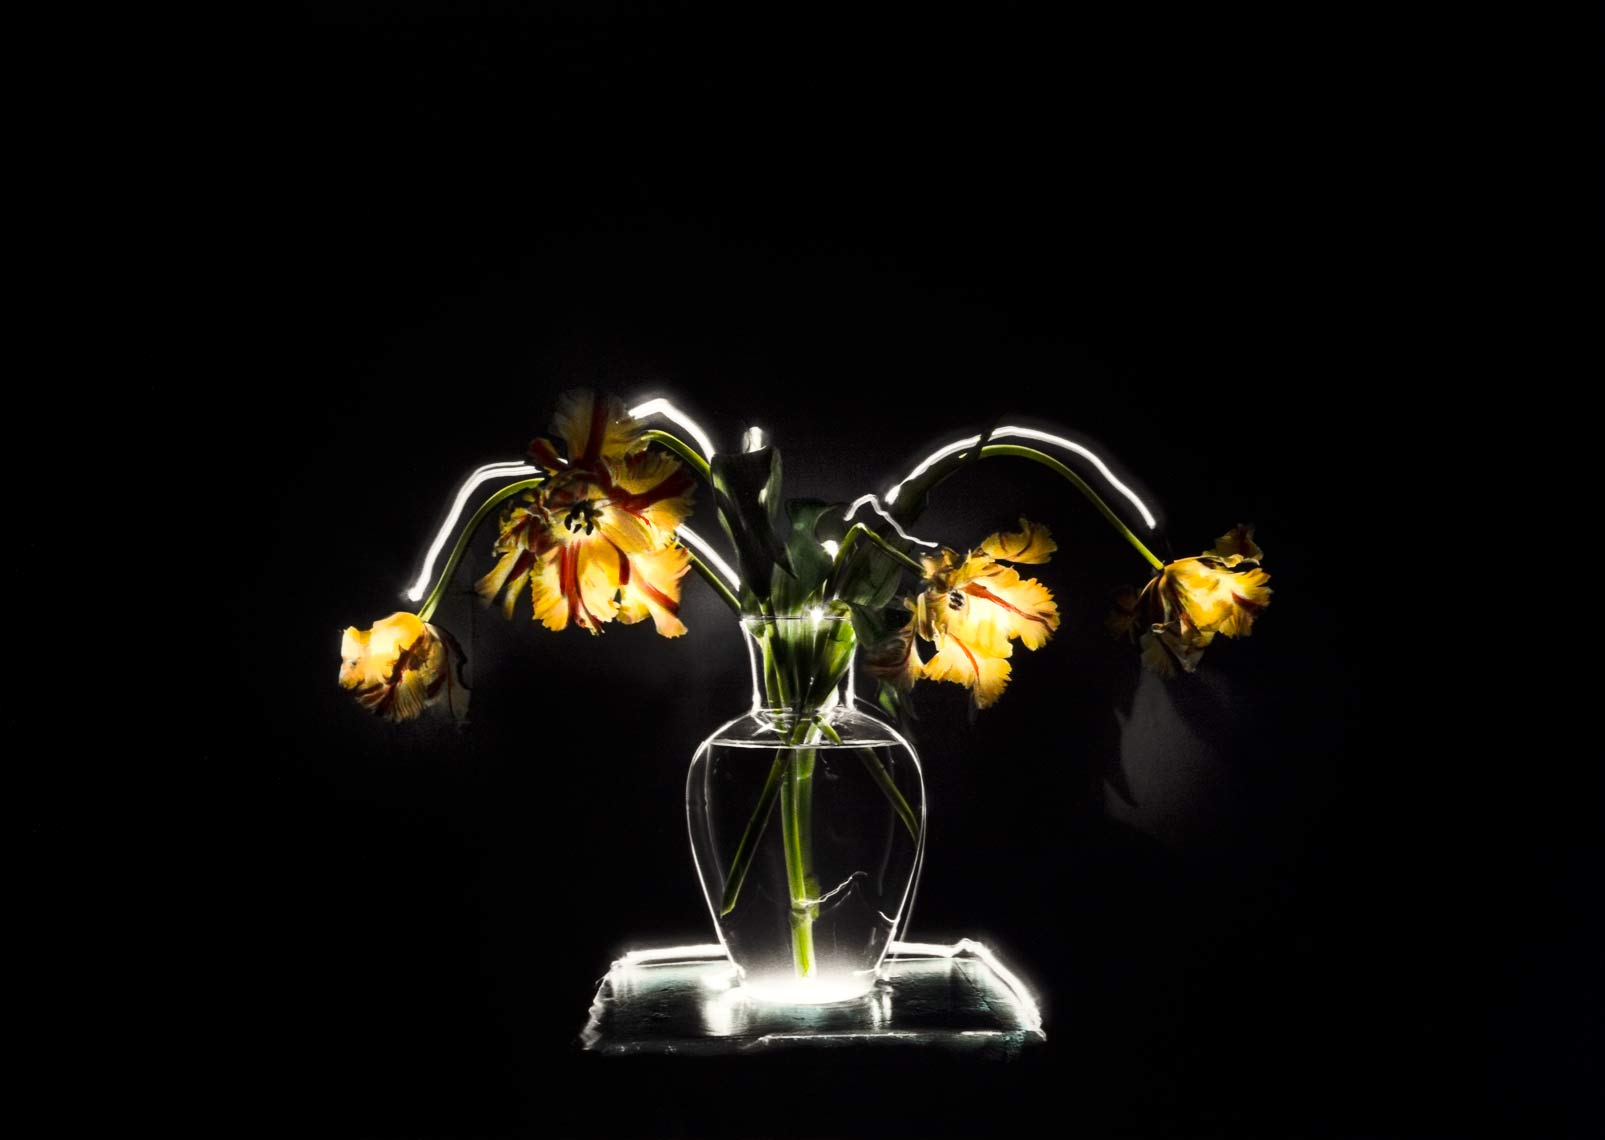 David Lebe; Parrot Tulips 1, 1987, still life, light drawing, hand colored photograph